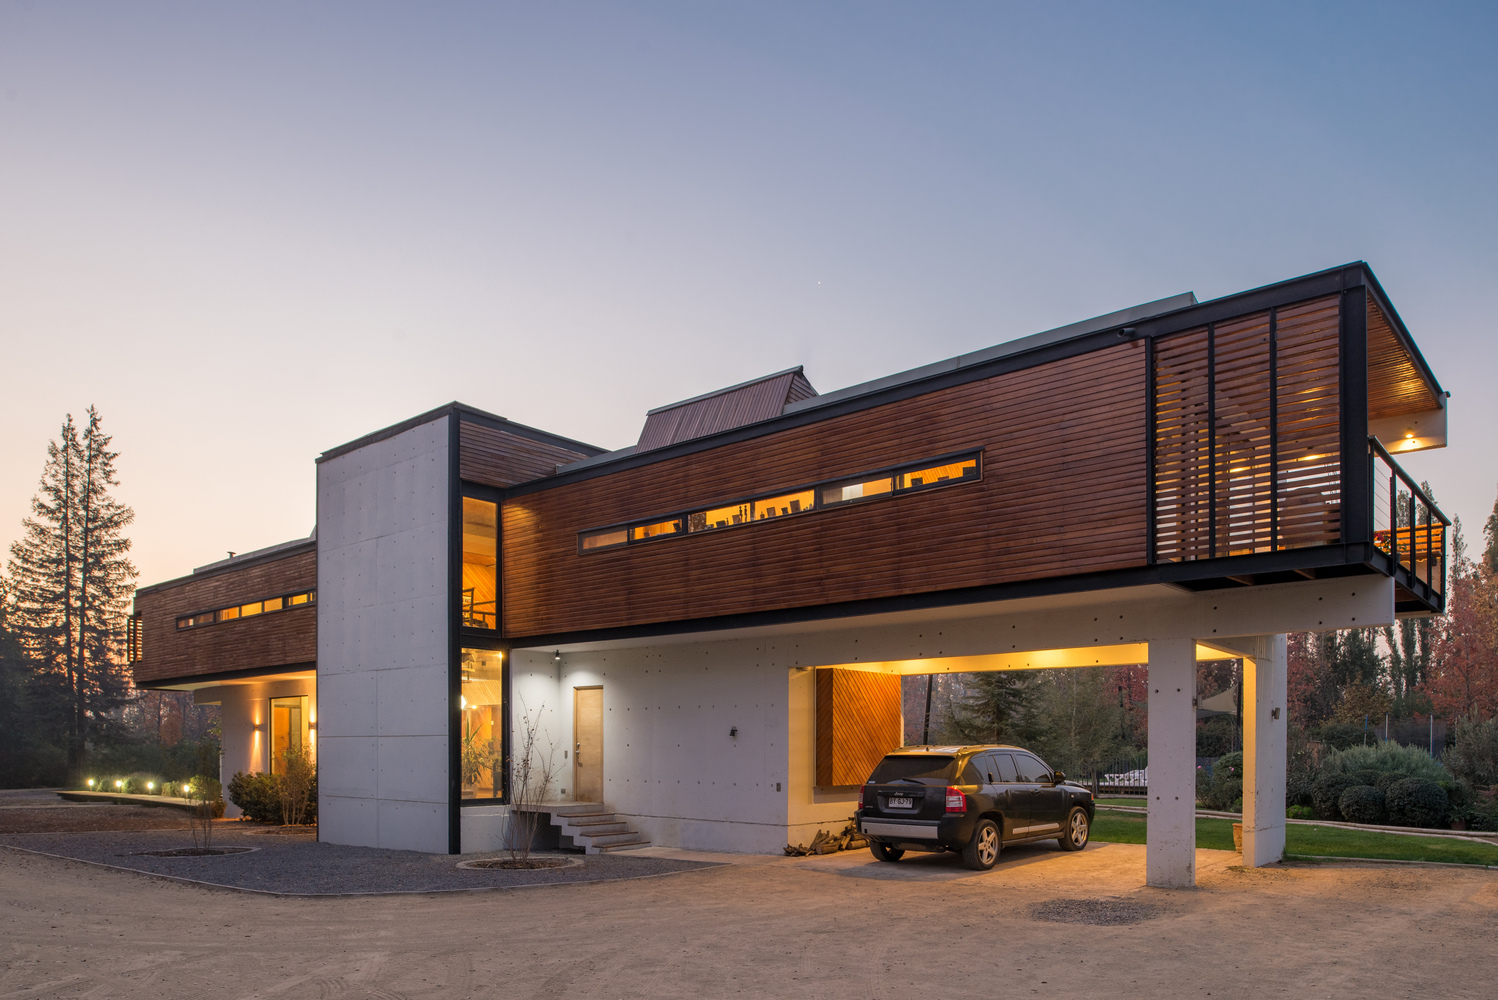 Rosales Quijada House by GITC Arquitectura in Chile